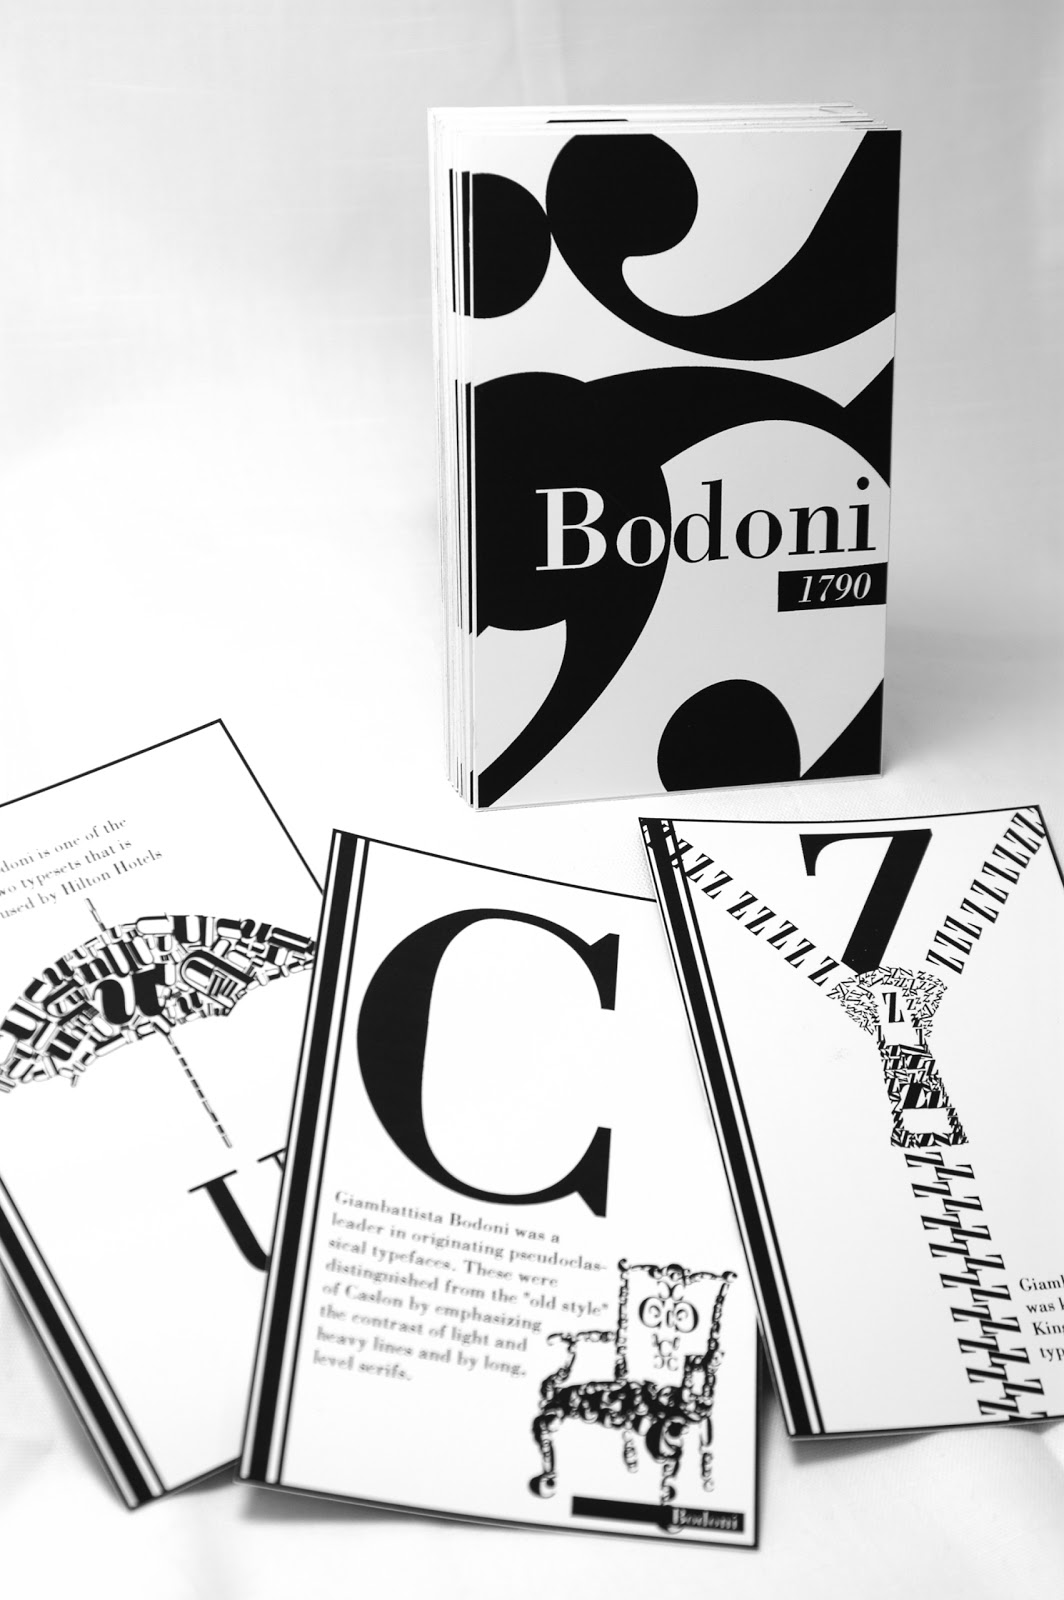 student work typography a to z history of bodoni typeface flash cards i heart bleeds